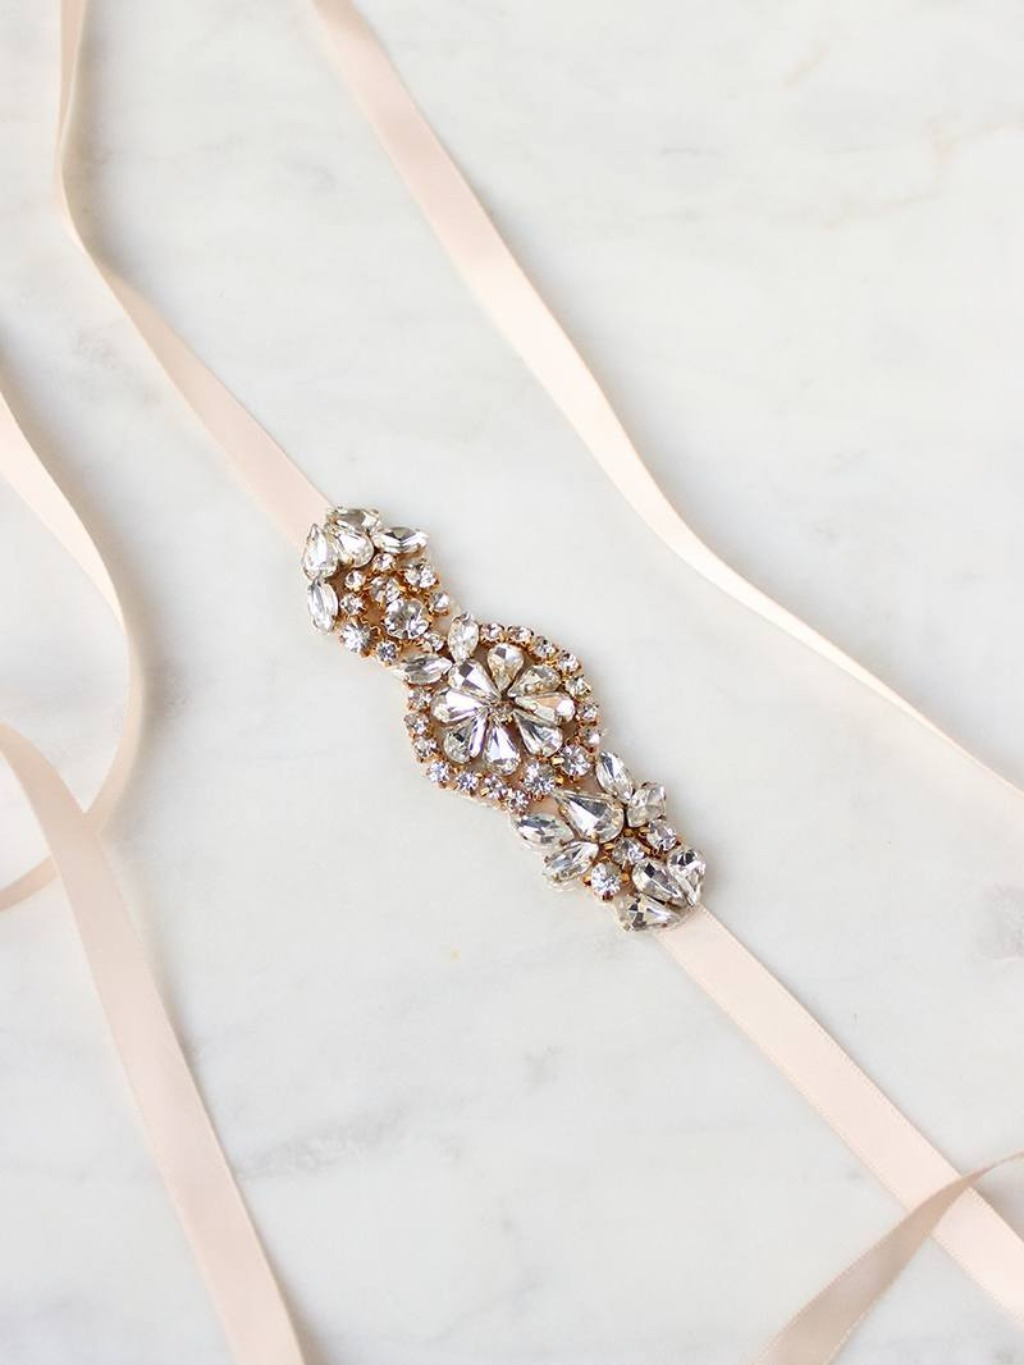 Finished with a satin sash and featuring gorgeous dewy rhinestones, the Bronte Petite Sash is one of our faves.